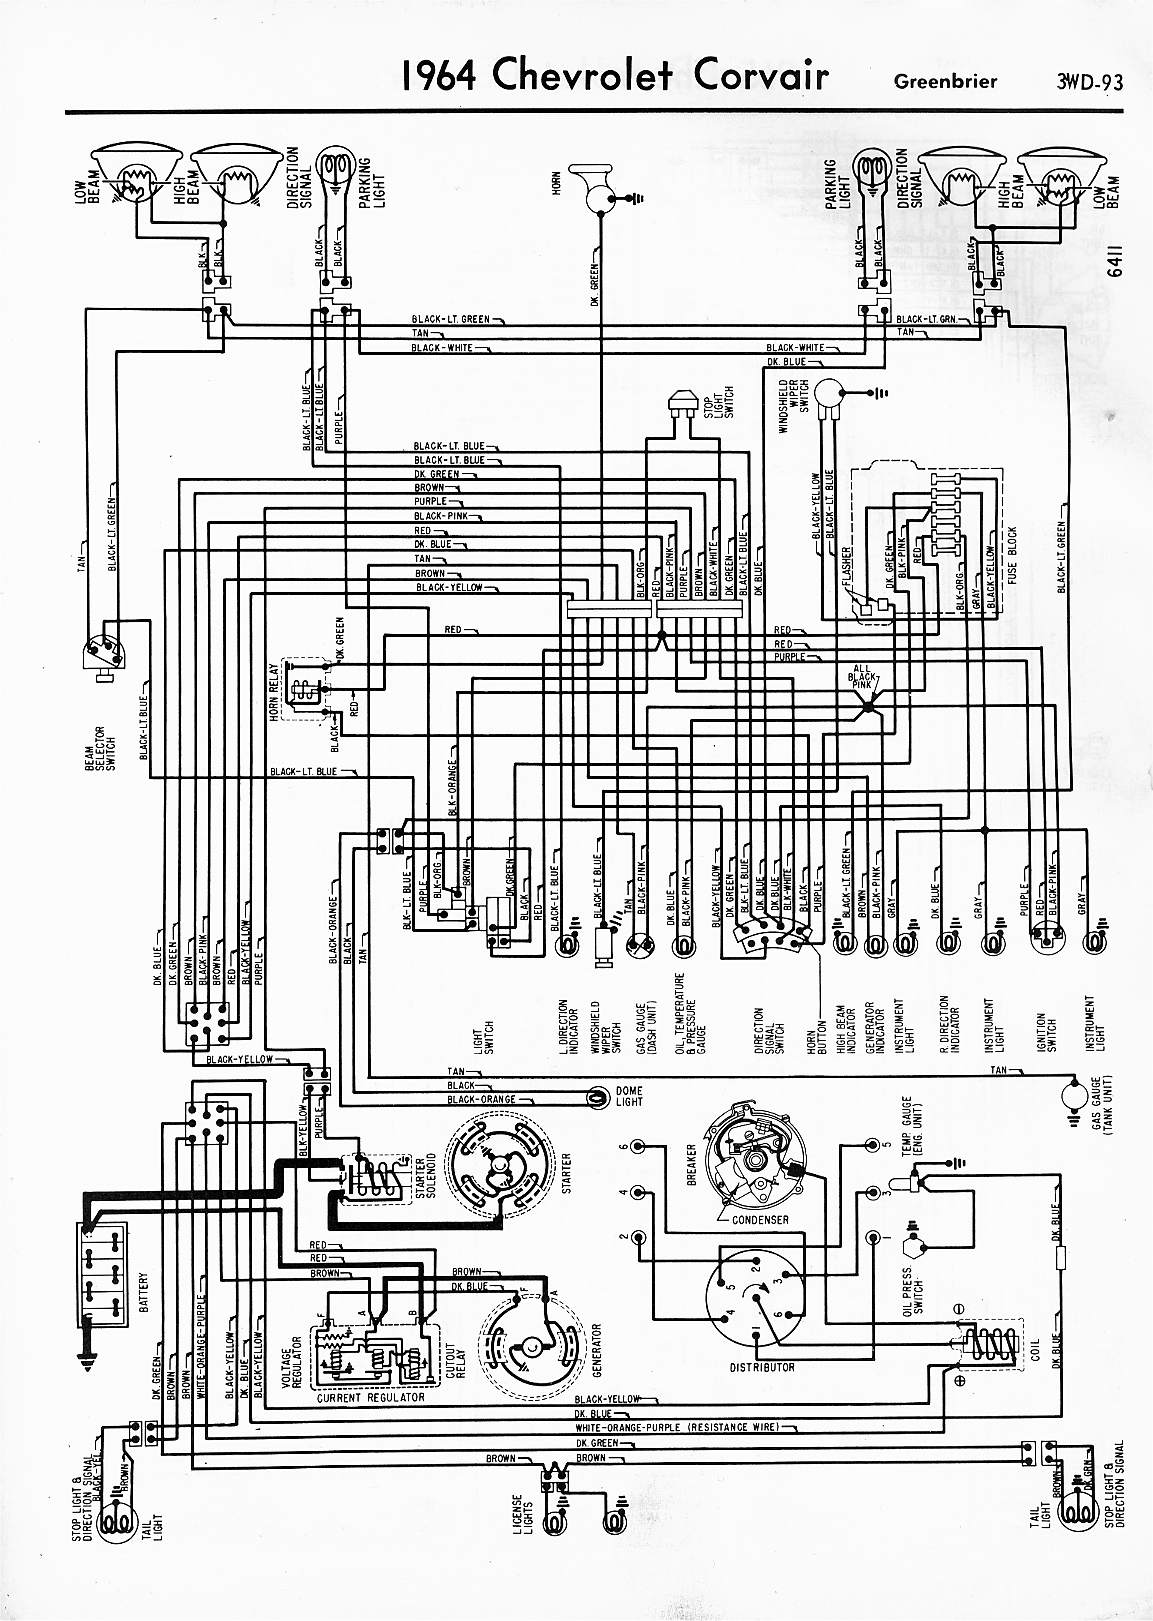 57 65 chevy wiring diagrams rh oldcarmanualproject com 1964 corvette ignition wiring diagram 1964 corvette brake wiring diagram